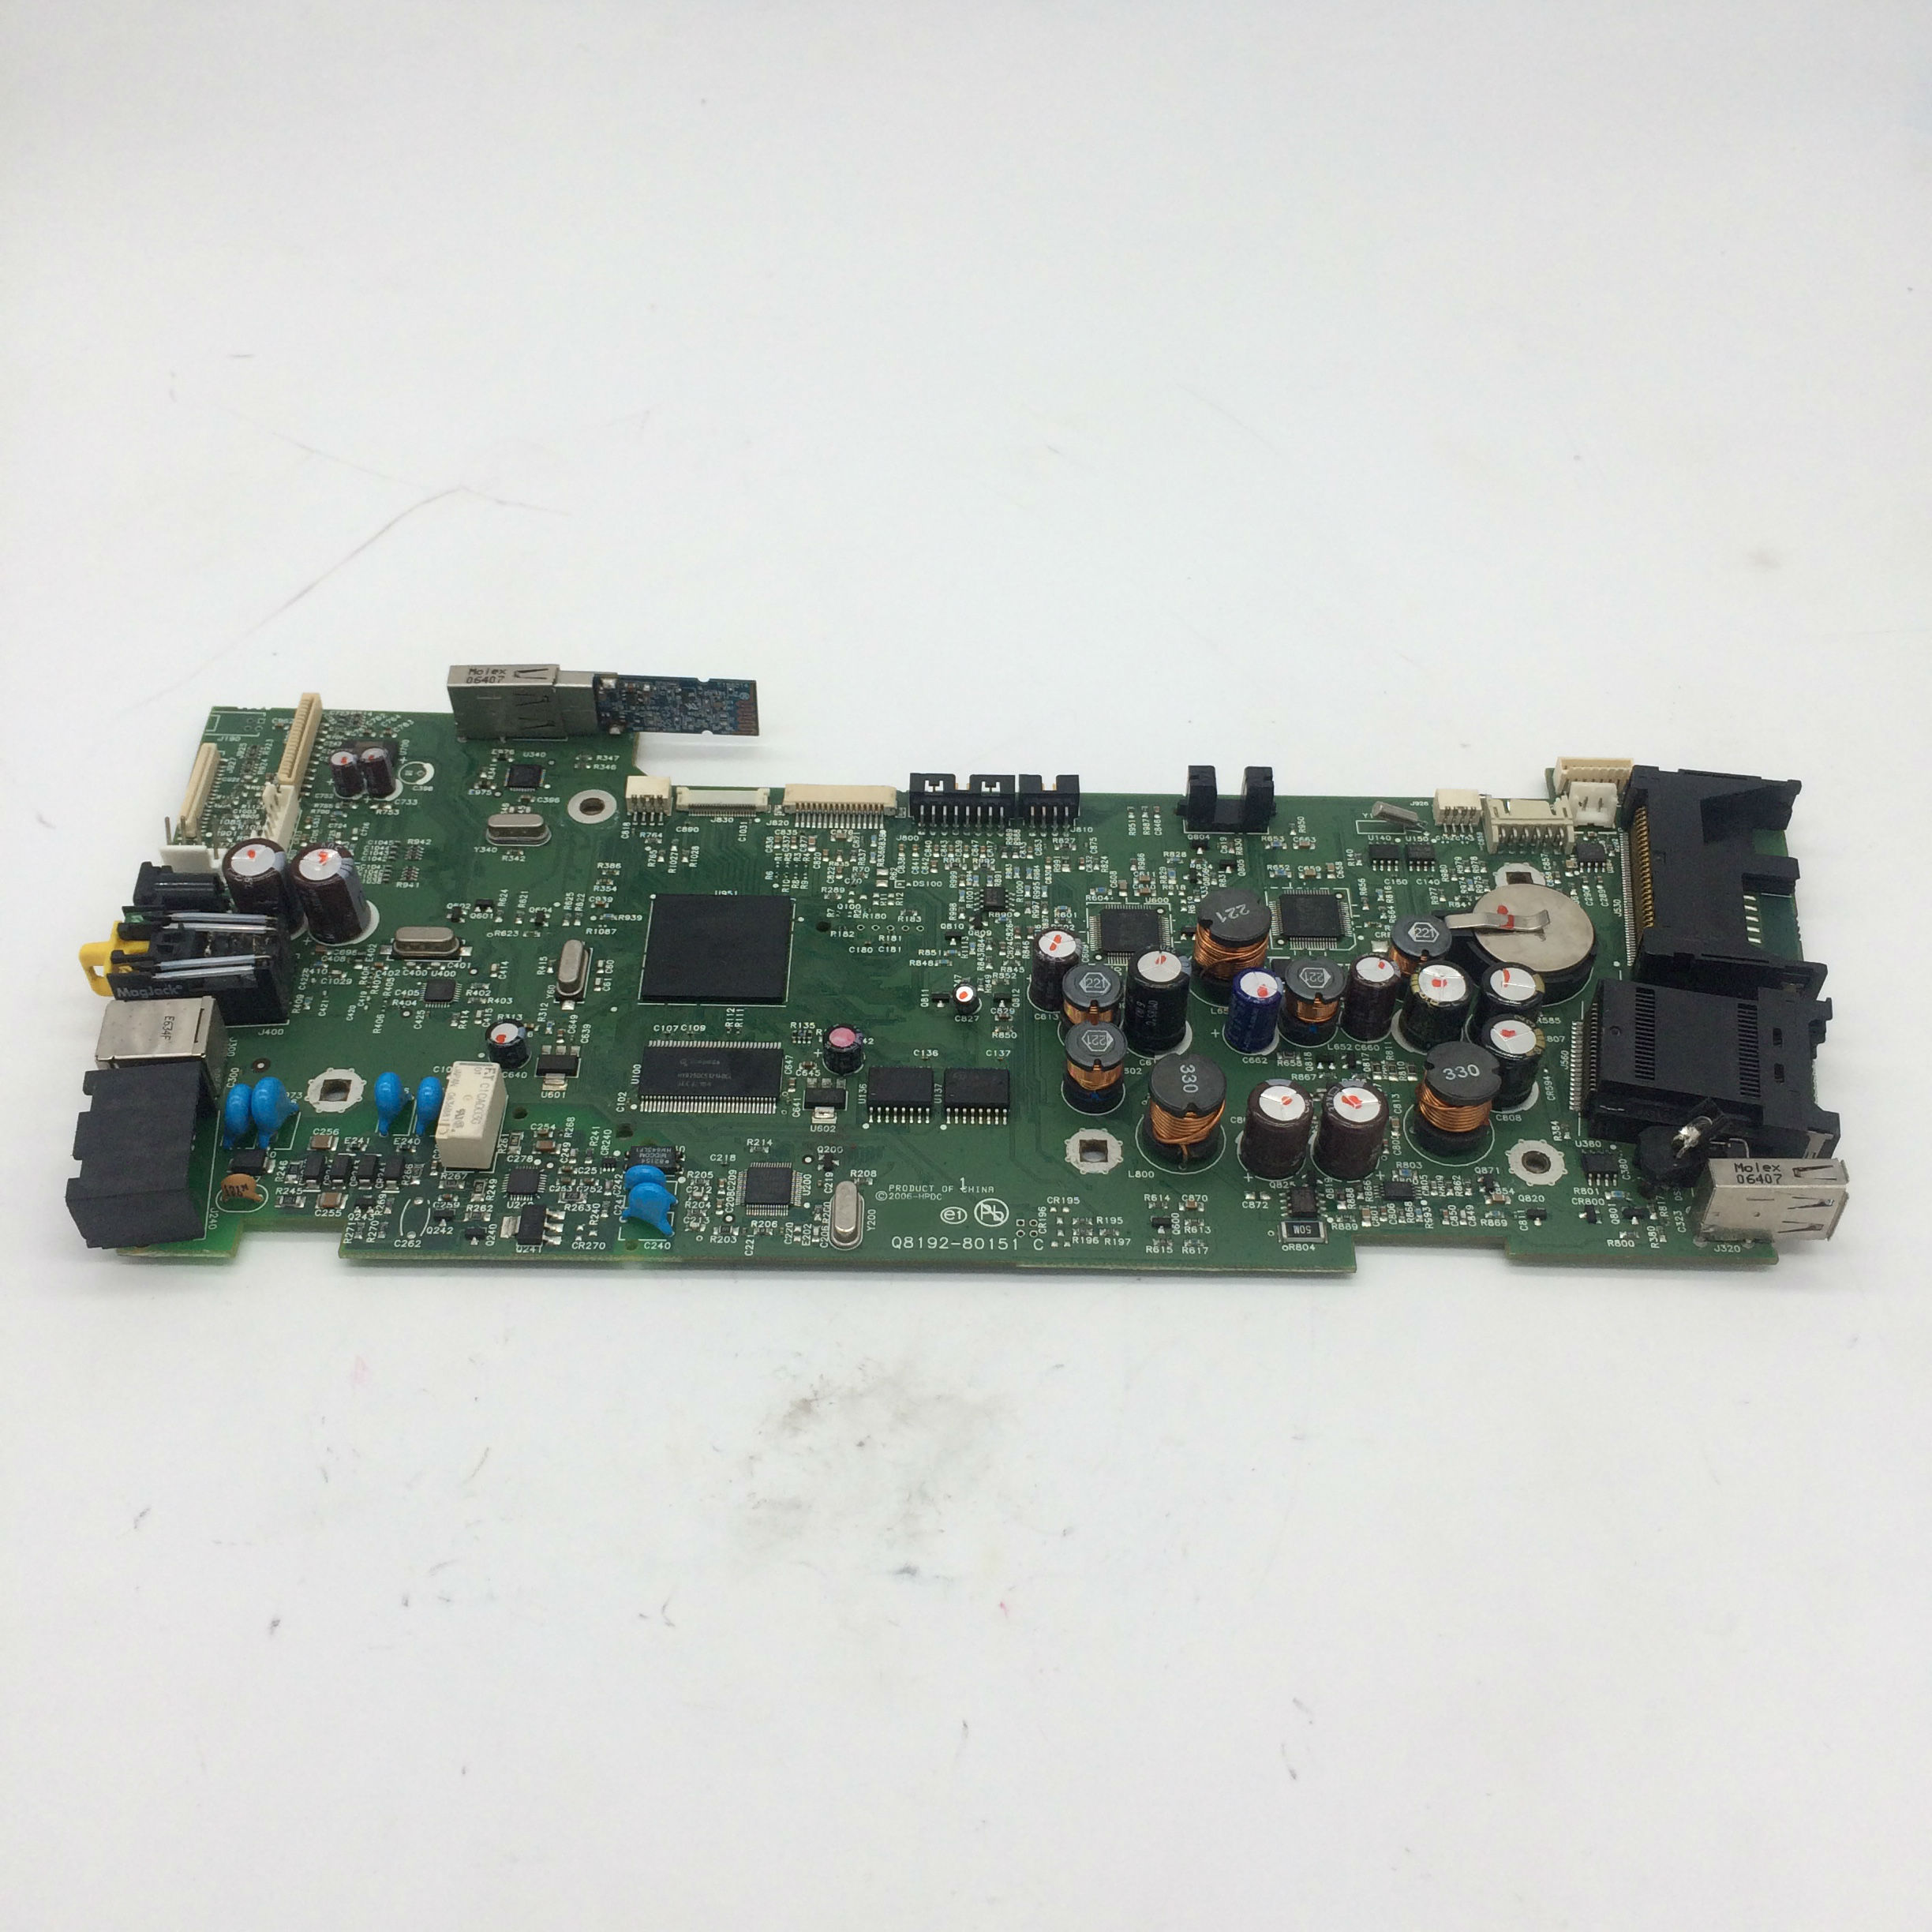 For HP PHOTOSMART C7180 FORMATTER BOARD Q8192-60151 Q8192-80151For HP PHOTOSMART C7180 FORMATTER BOARD Q8192-60151 Q8192-80151